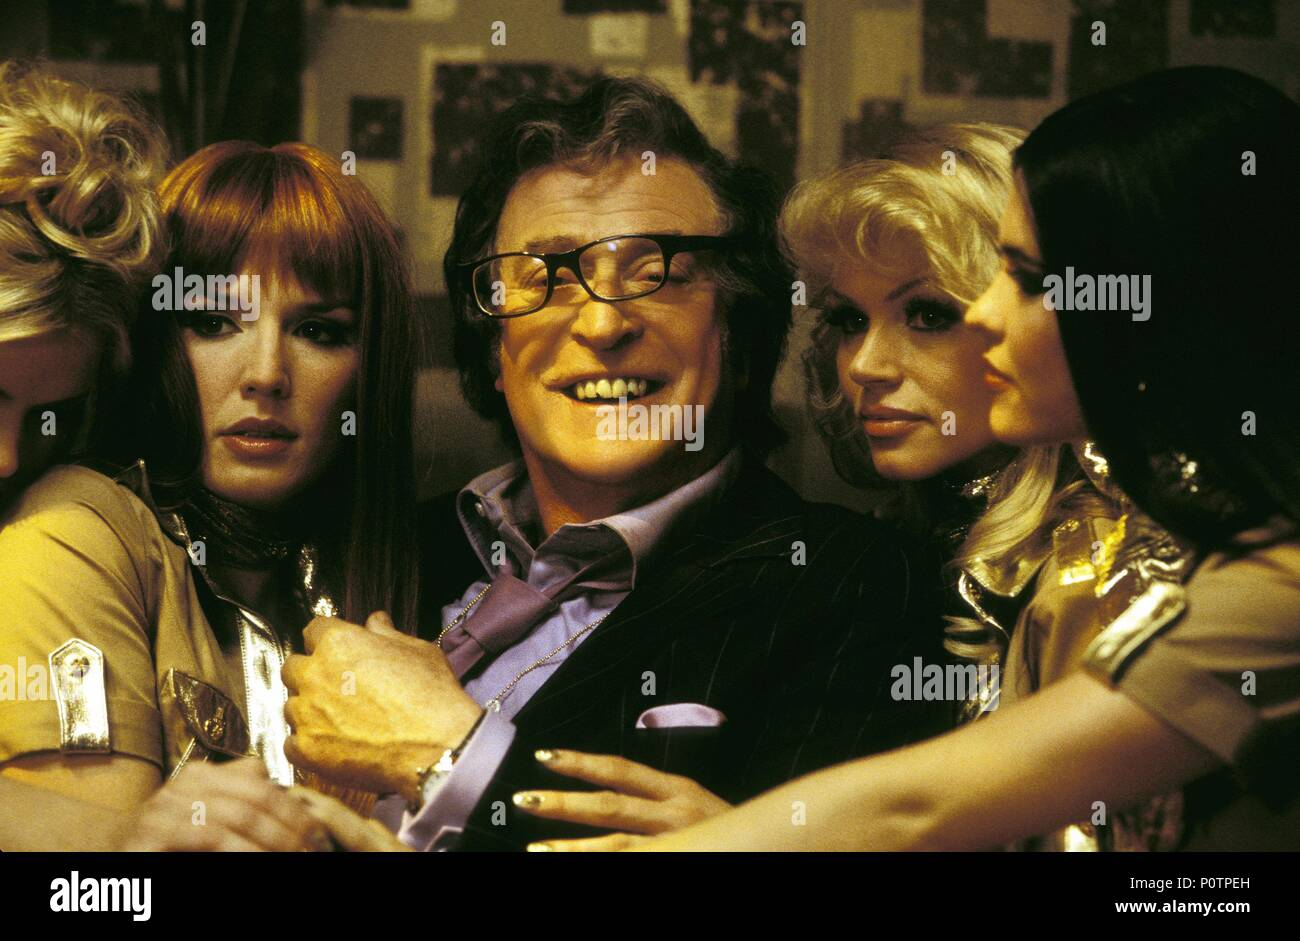 Original Film Title: AUSTIN POWERS IN GOLDMEMBER.  English Title: AUSTIN POWERS: GOLDMEMBER.  Film Director: M. JAY ROACH.  Year: 2002.  Stars: MICHAEL CAINE. Credit: NEW LINE CINEMA / GORDON, MELINDA SUE / Album - Stock Image